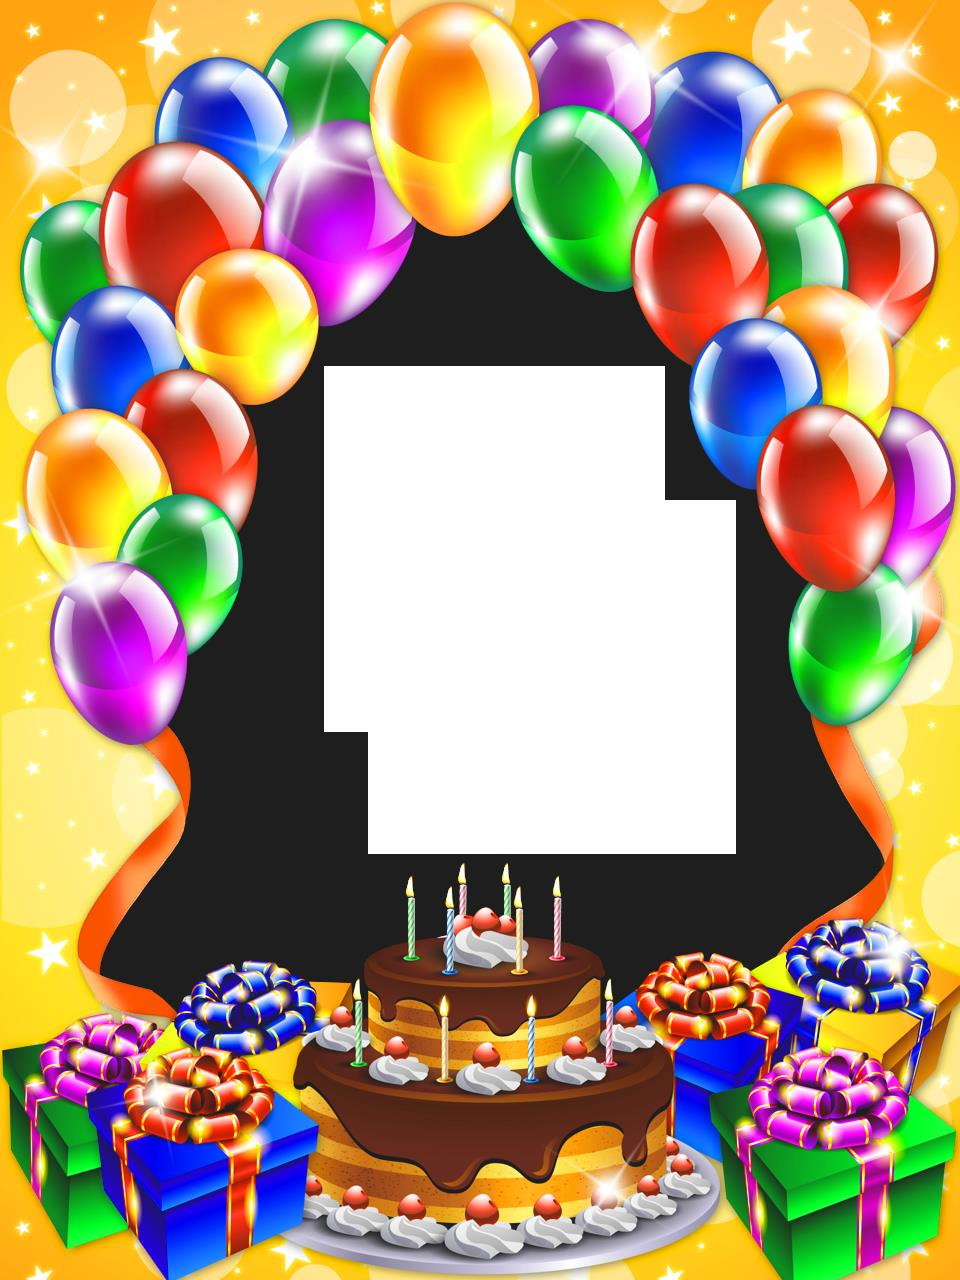 birthday party clip art borders ; 5835f04fa03c440c1b475dd888522796_happy-birthday-png-transparent-multicolor-frame-happy-birthday-happy-birthday-frame-clipart_960-1280